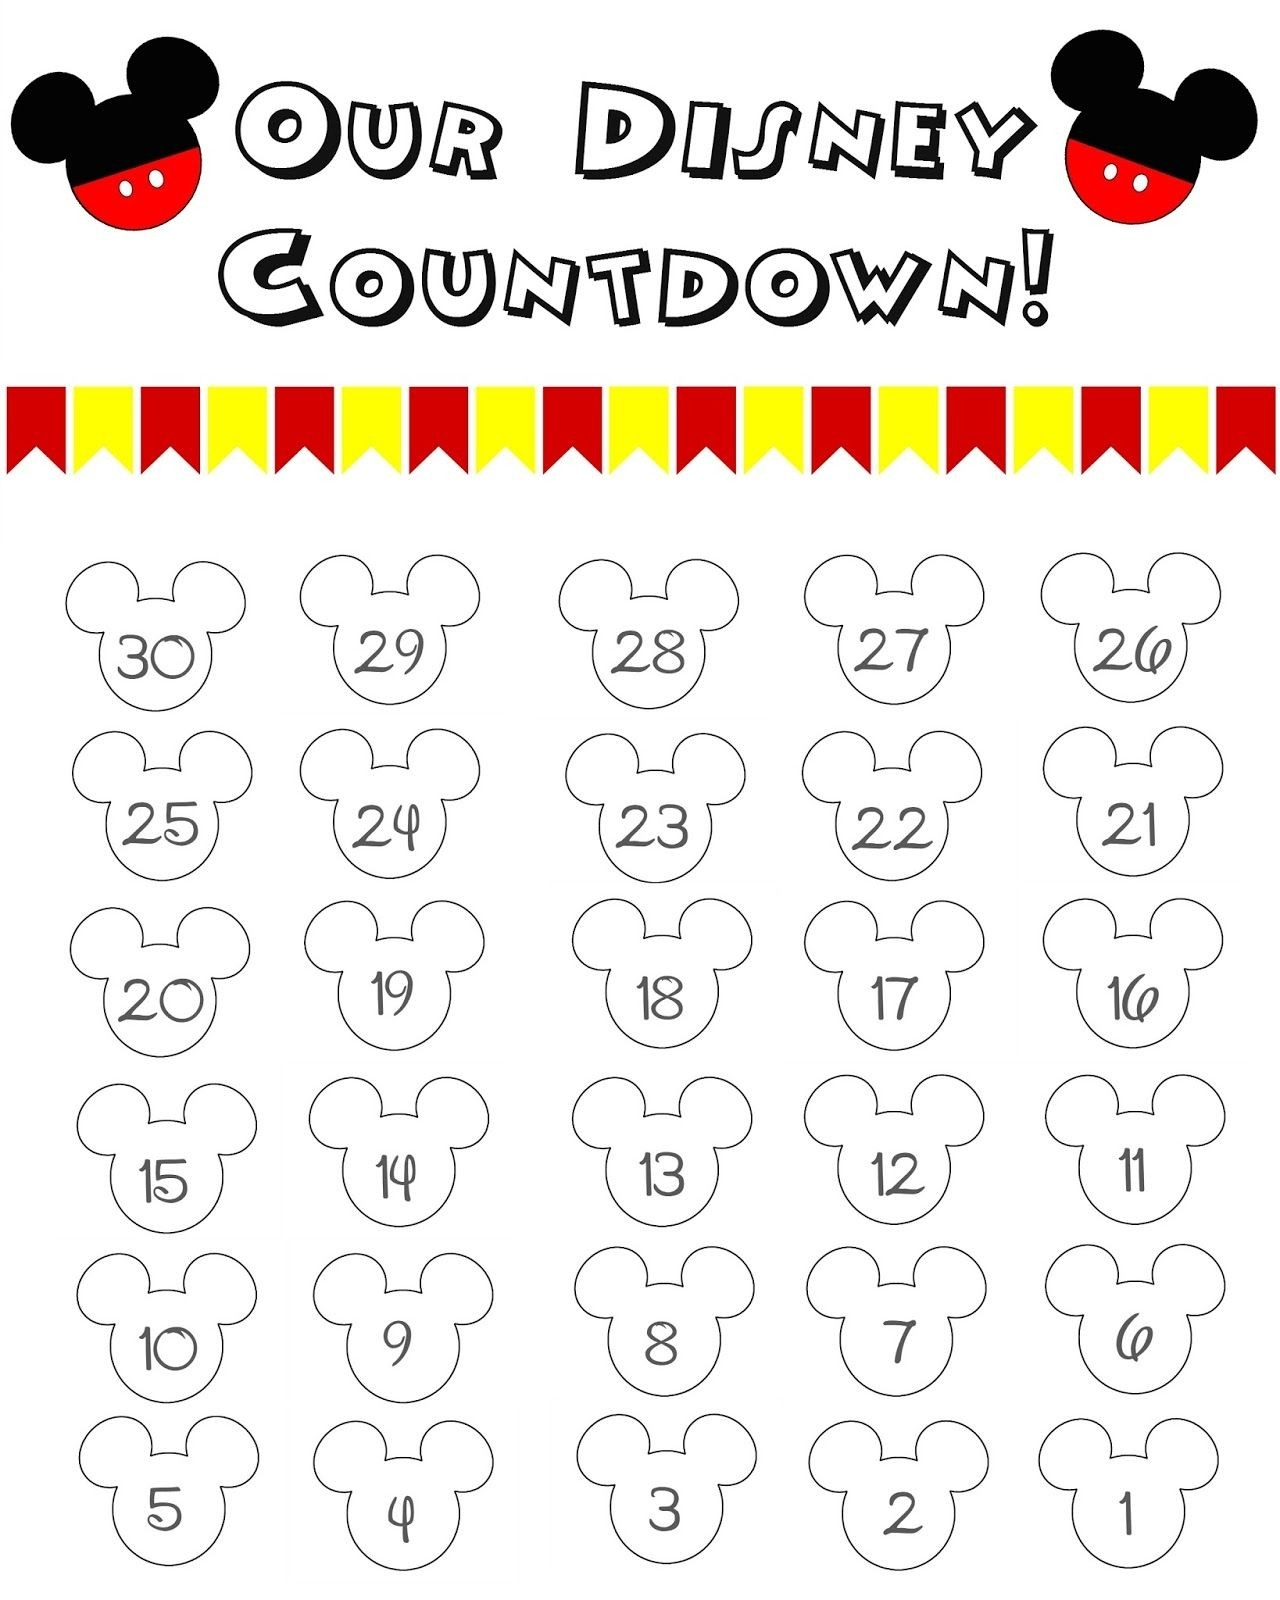 Disney World Countdown Calendar - Free Printable | The Momma-Countdown To Disney Template